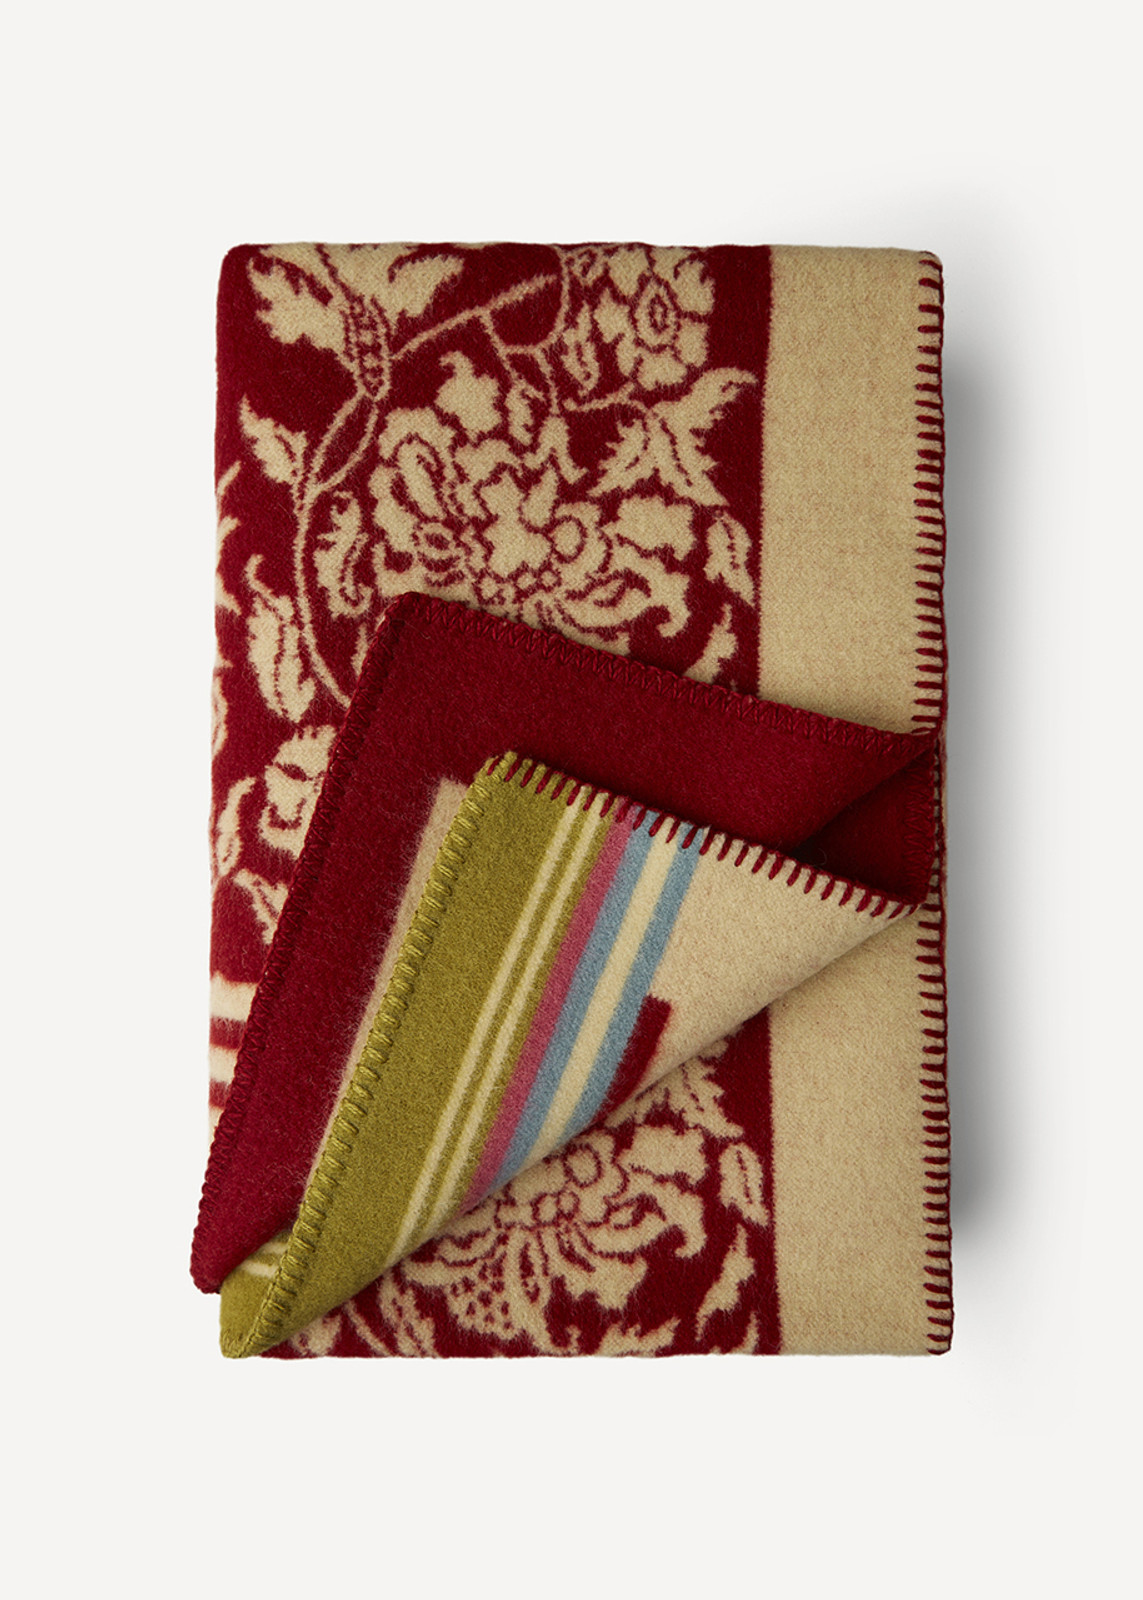 Oleana Blanket with Floral Pattern and Accent Stripes, 203A Red